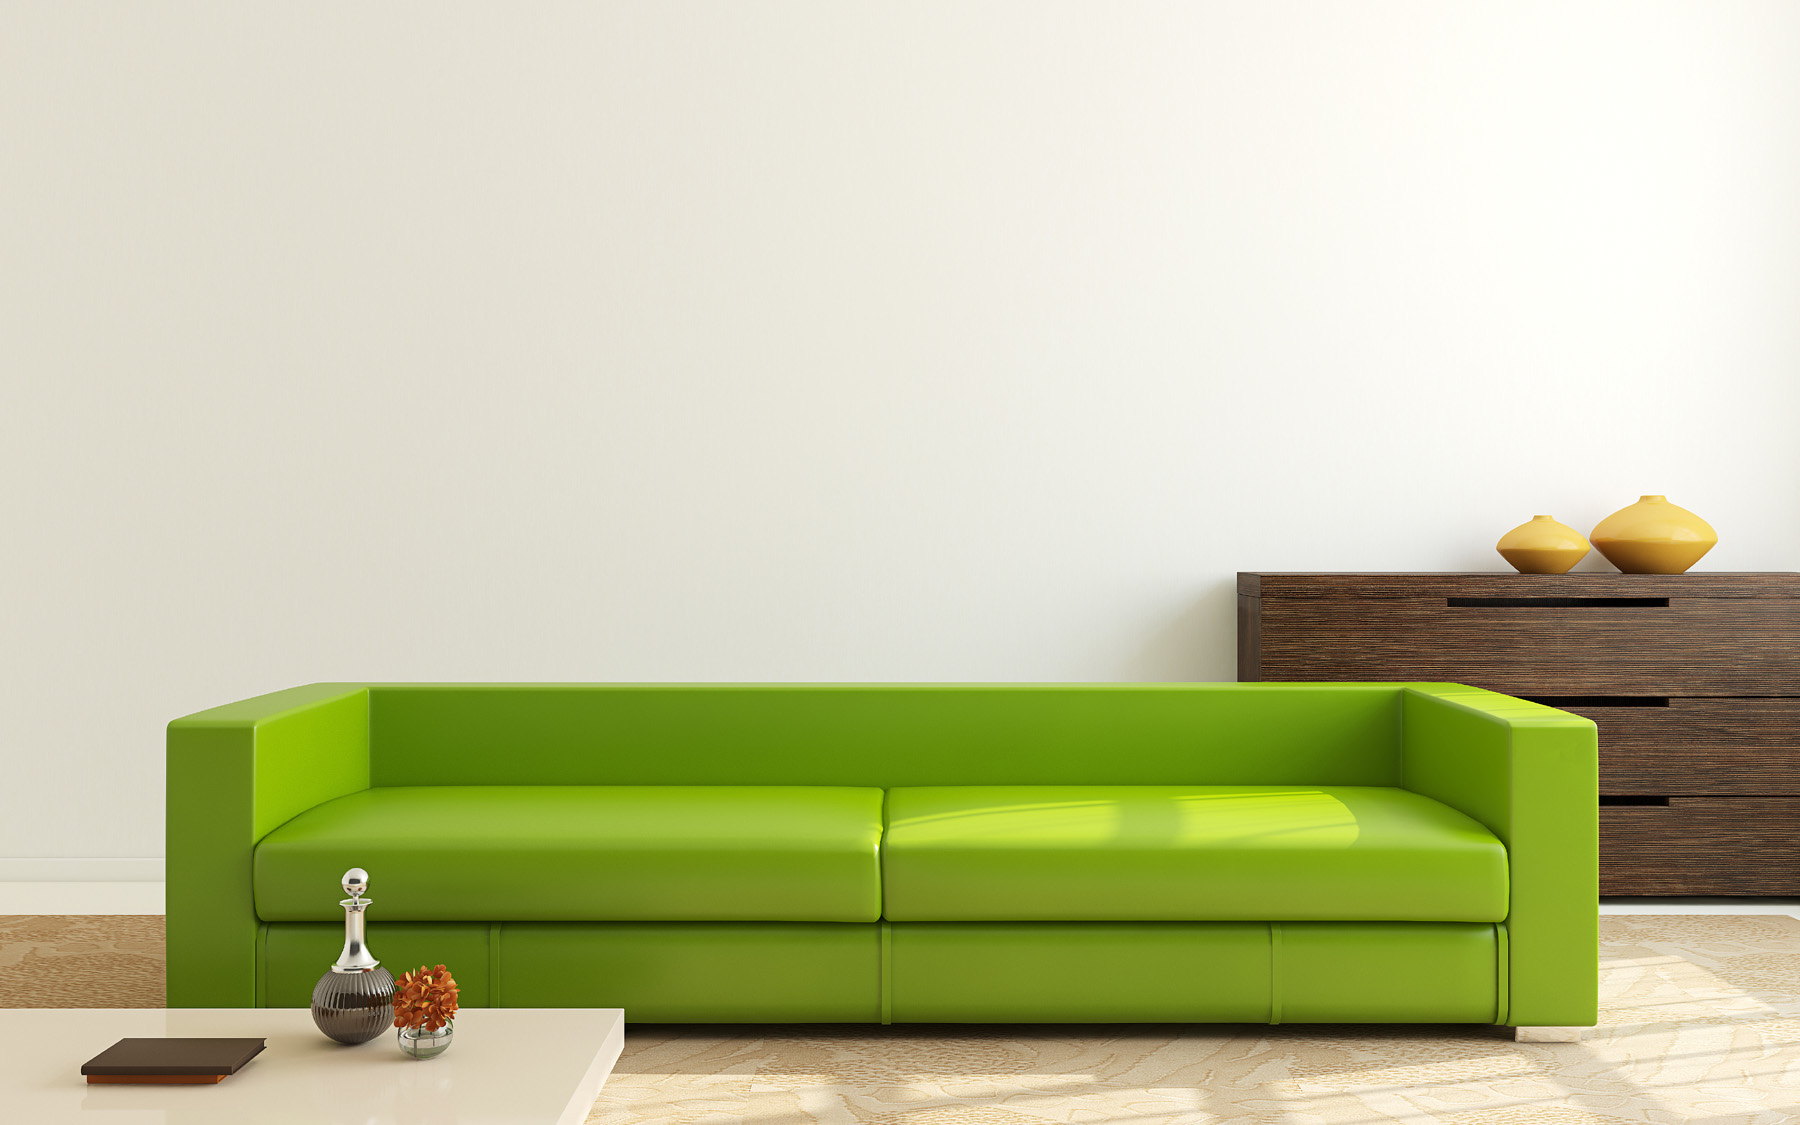 Sofa Furniture sofa furniture 49471 - building home decoration - city building